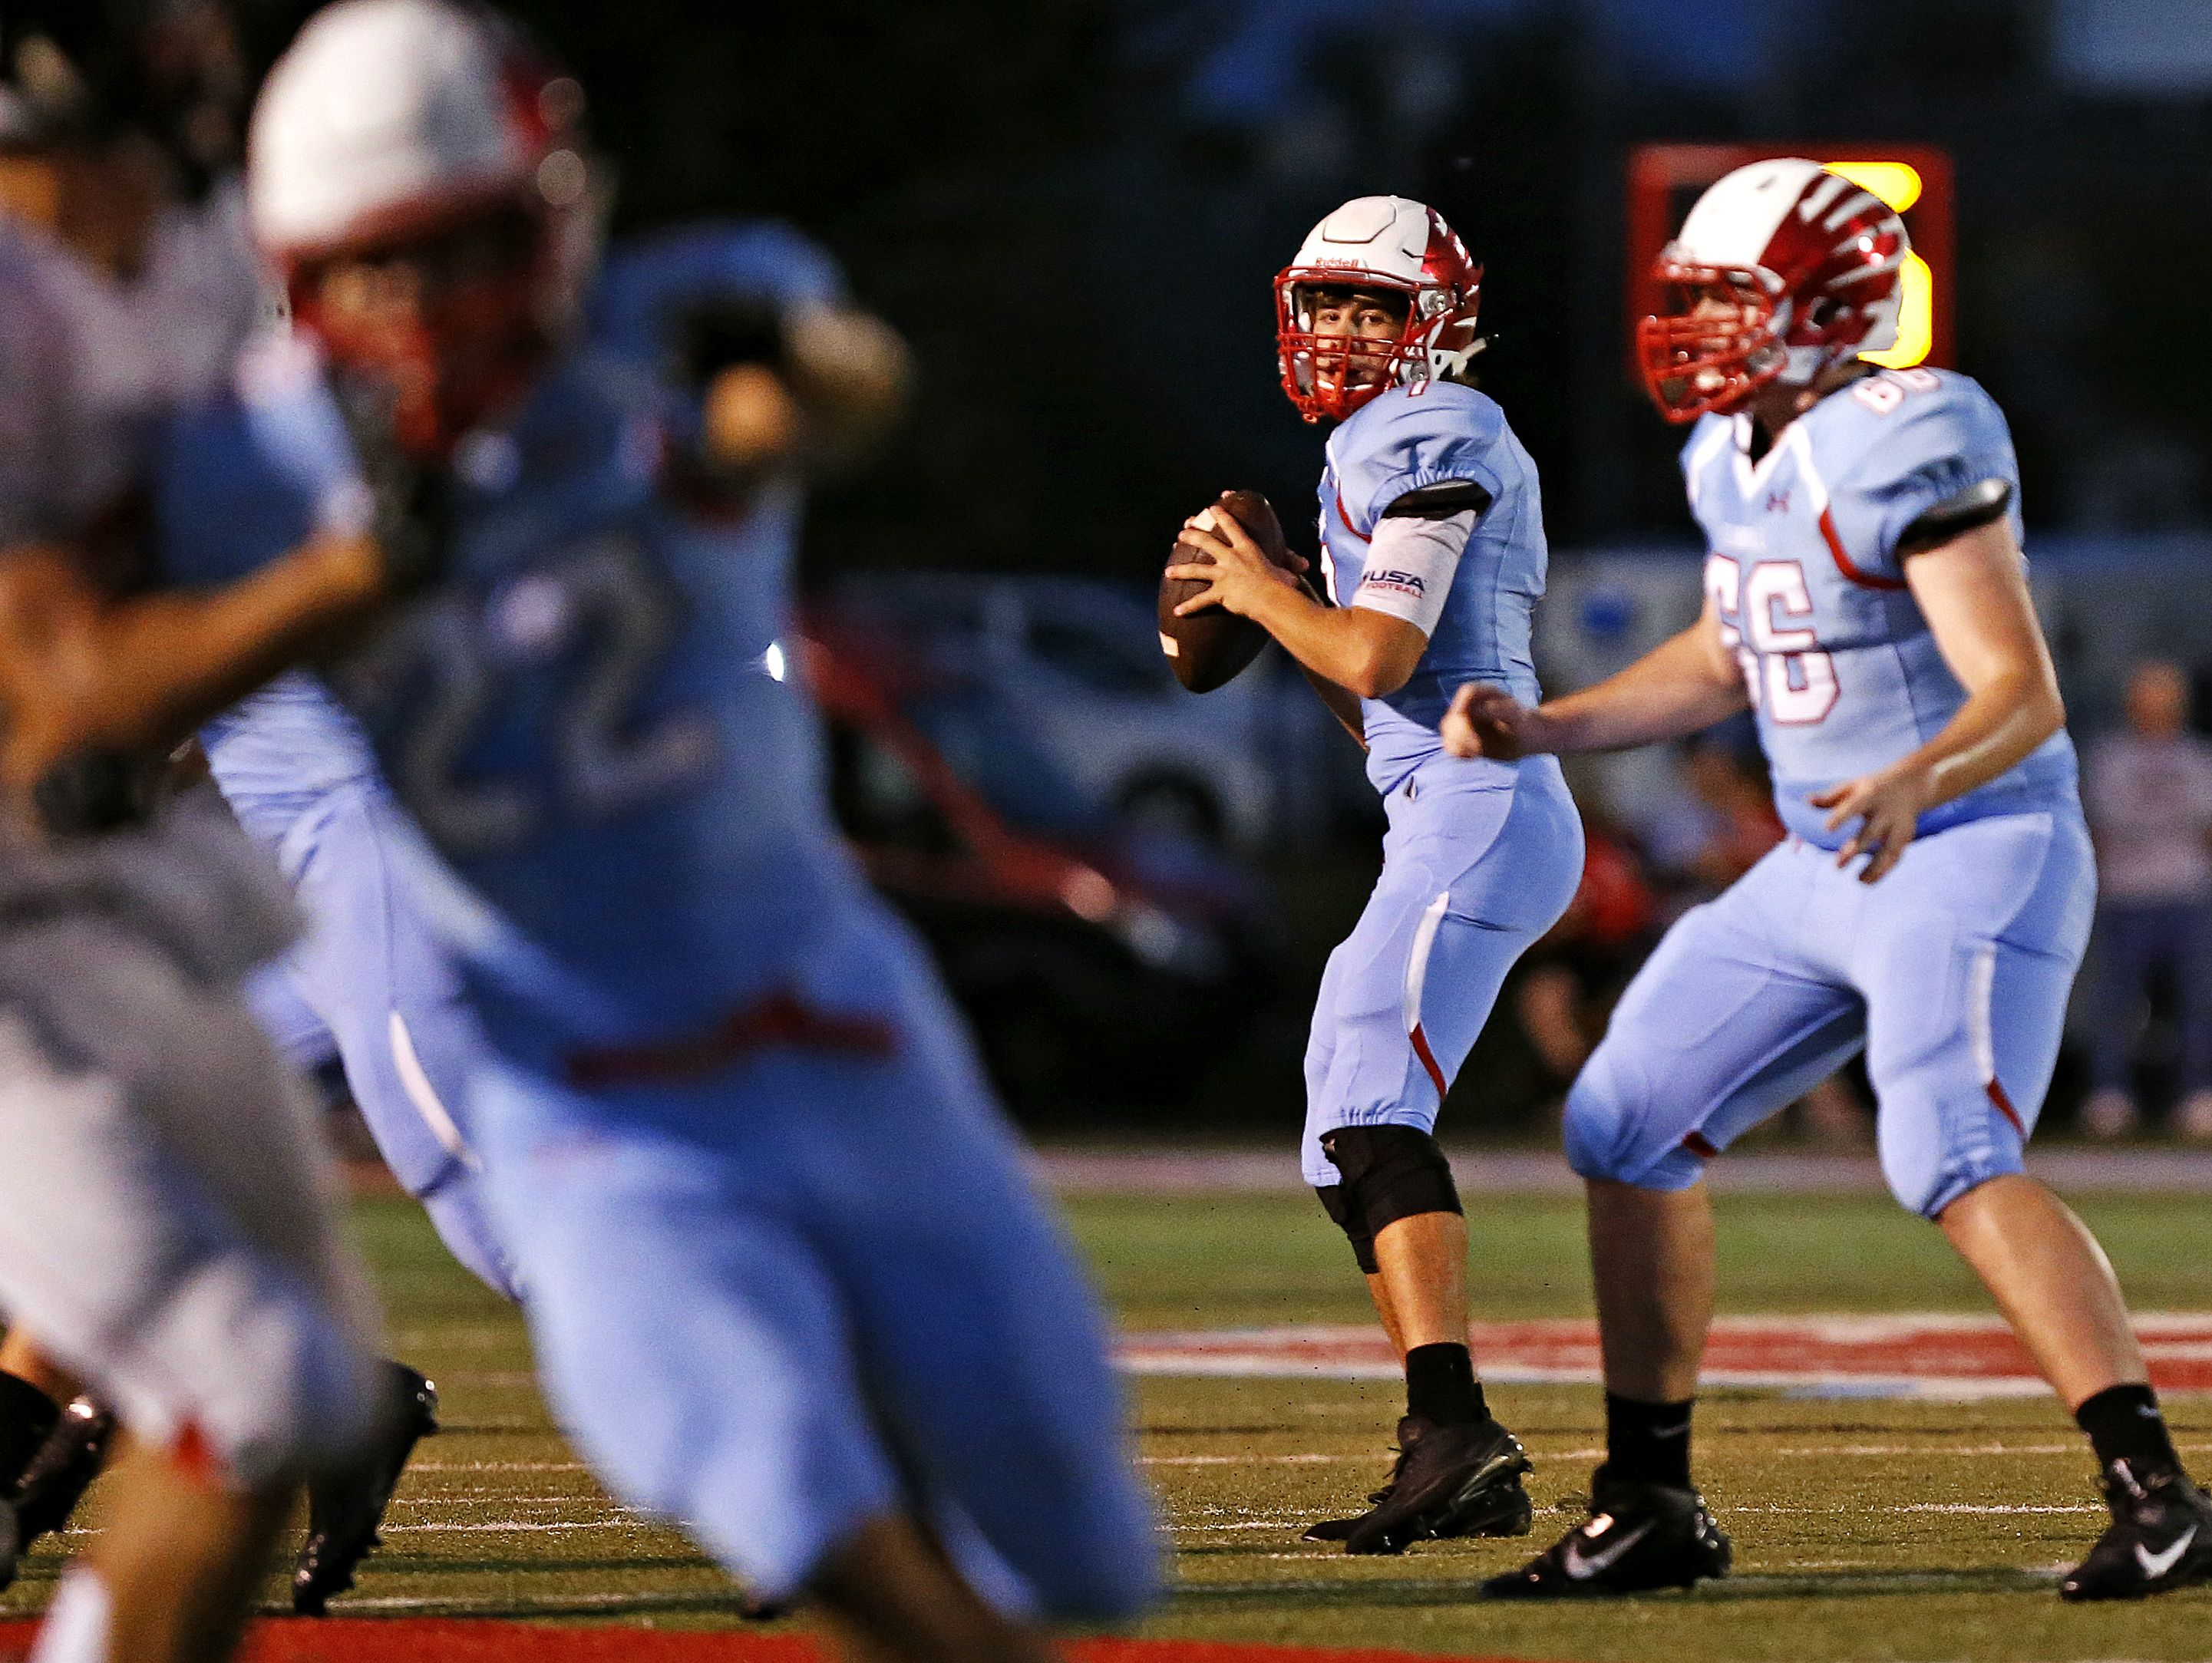 Glendale High School quarterback Alex Houston (7) gets ready to throw the ball during second quarter action of the Falcons game against West Plains High School at Lowe Stadium in Springfield, Mo. on Sept. 2, 2016.